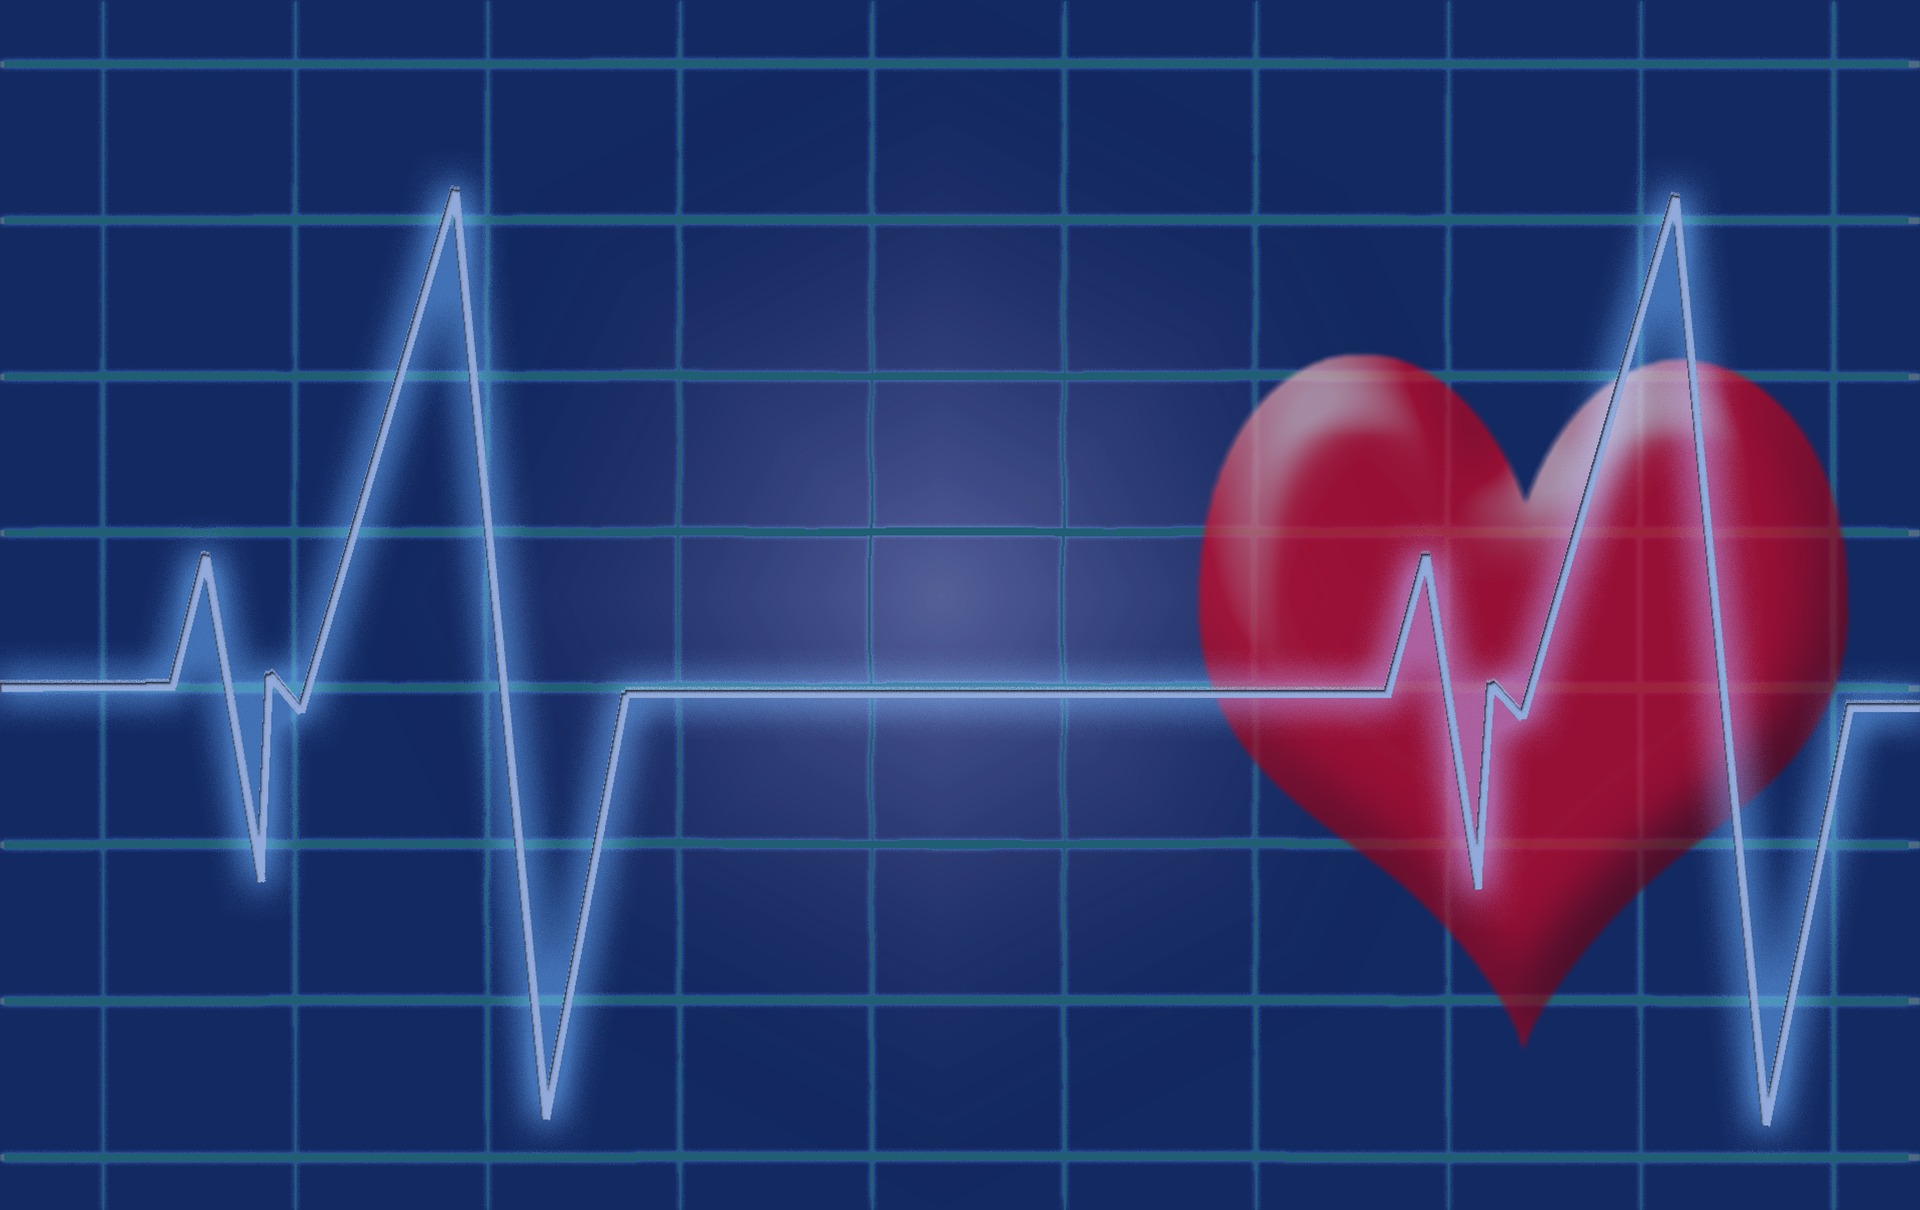 #DoesItWorkSummary Homocysteine Reduction for Preventing Cardiovascular Disease